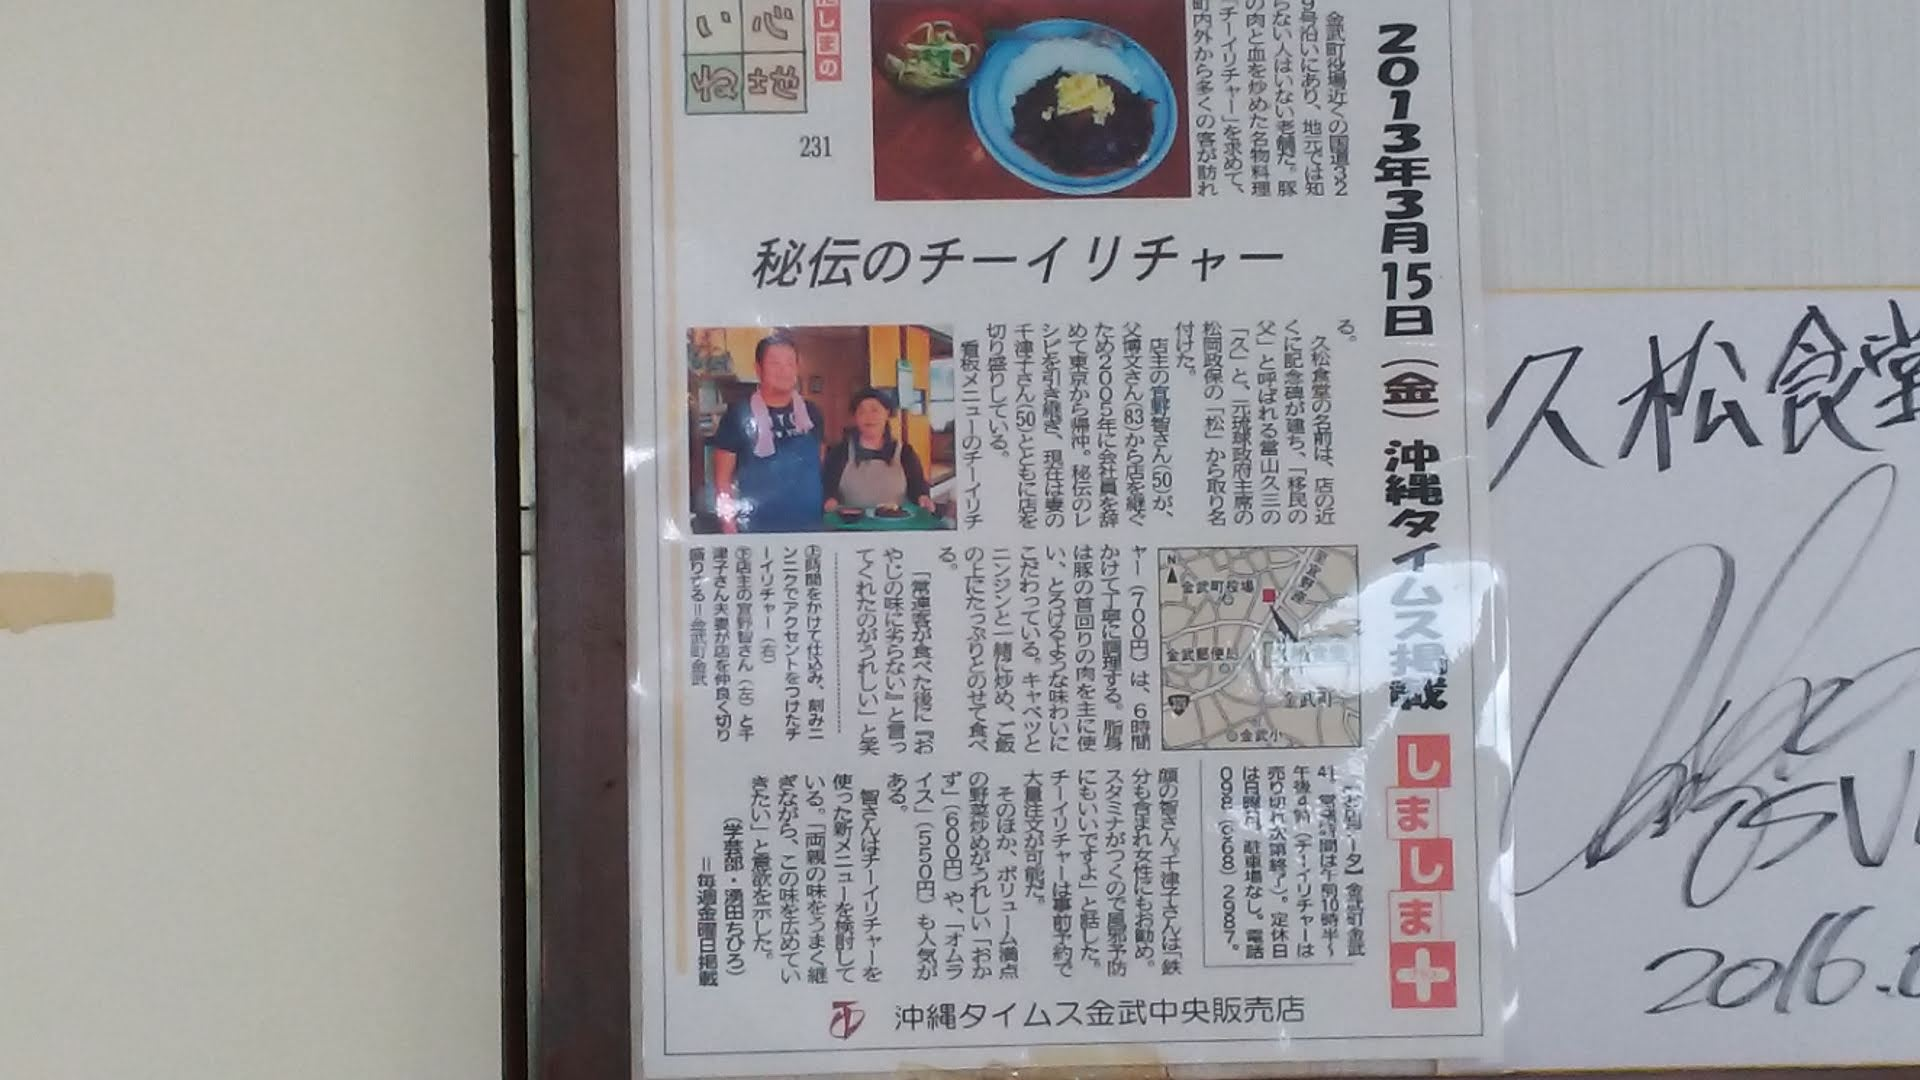 Hisamatsu Shokudou has been taken up also in local newspapers 1